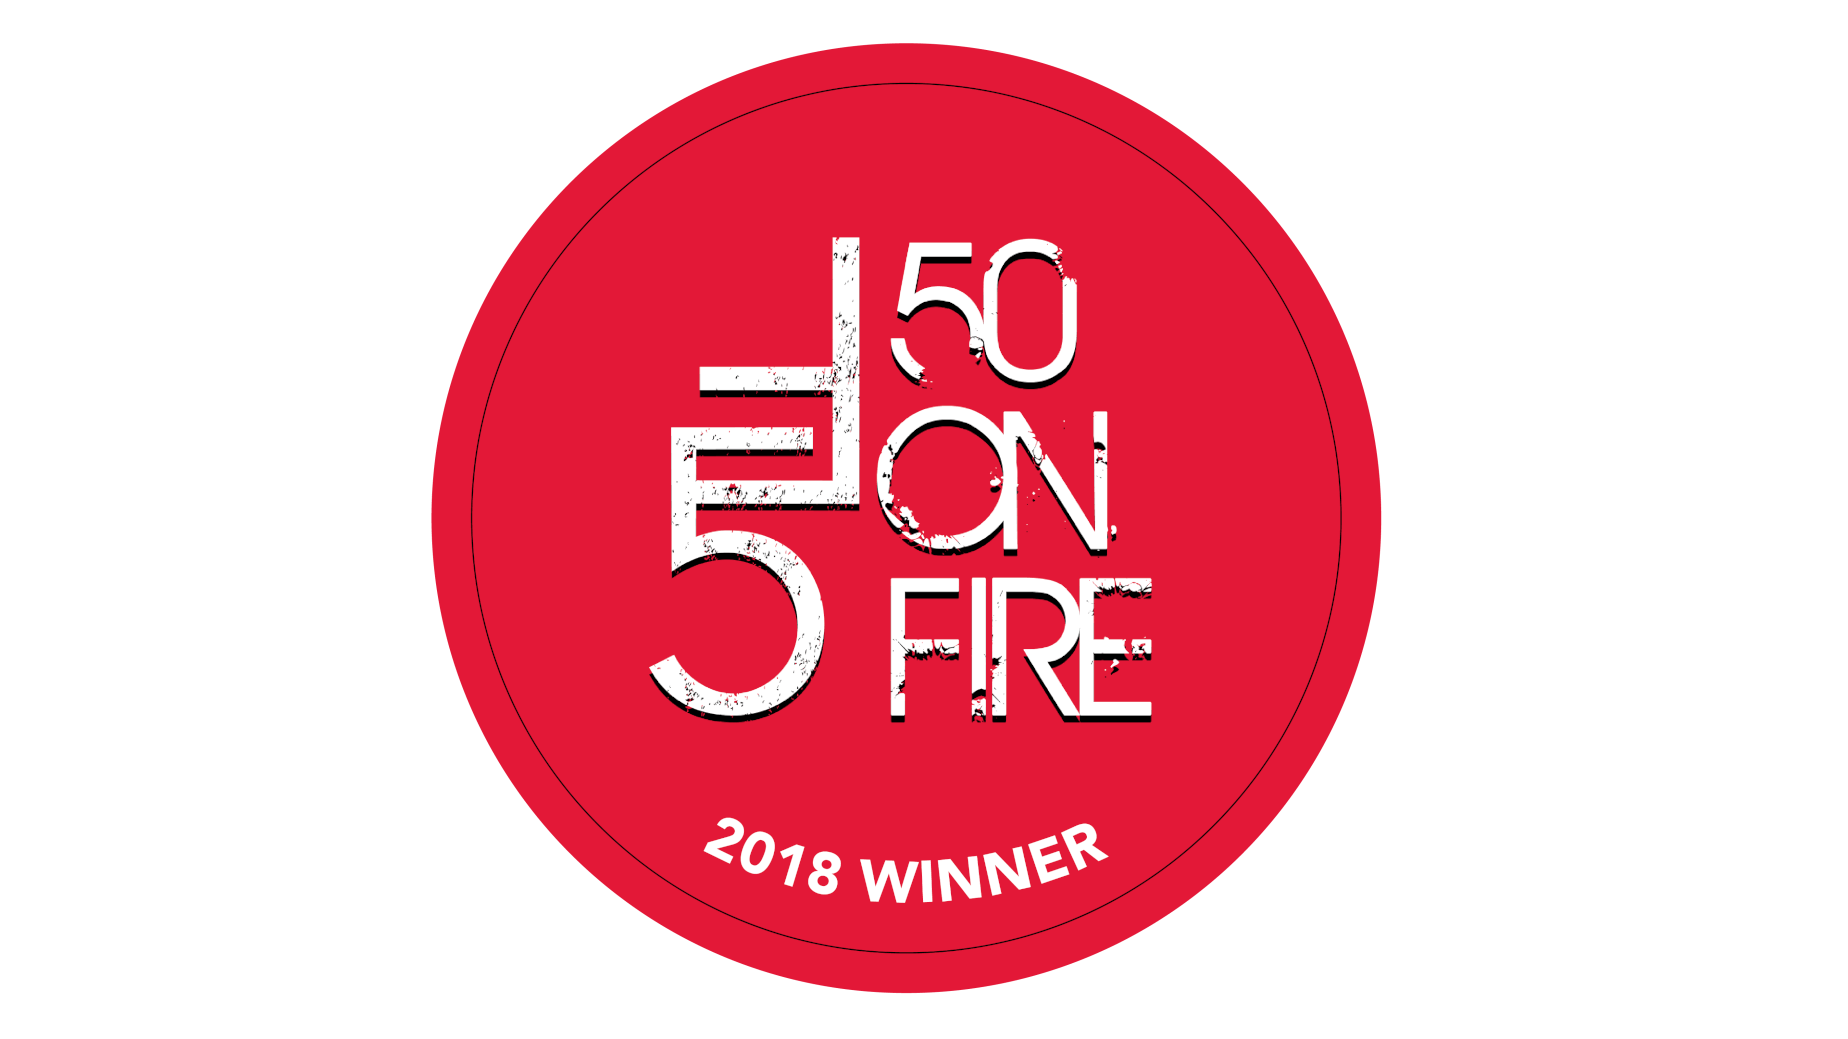 50 on Fire award